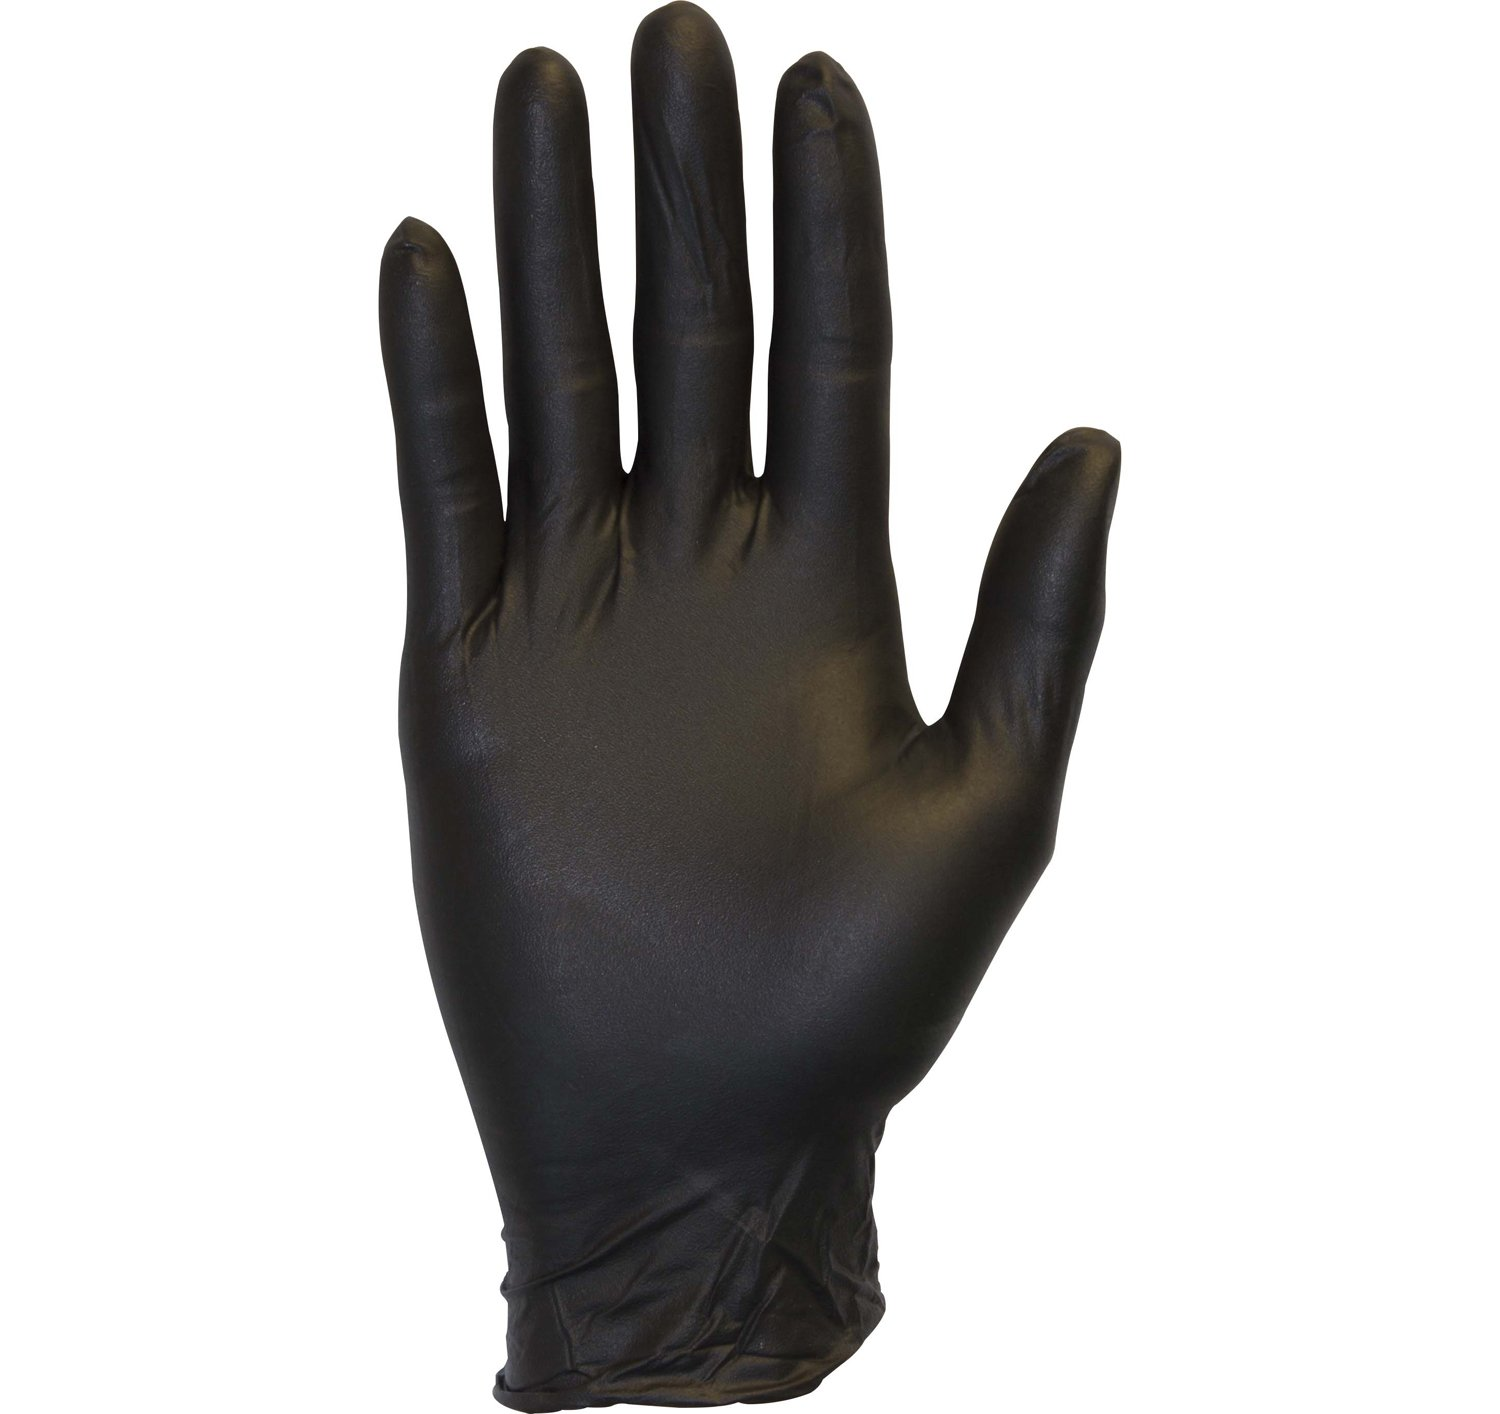 Black Nitrile Exam Gloves - Medical Grade, Disposable, Powder Free, Latex Rubber Free, Heavy Duty, Textured, Non Sterile, Work, Medical, Food Safe, Cleaning, Wholesale, Size Large (Case of 1000)